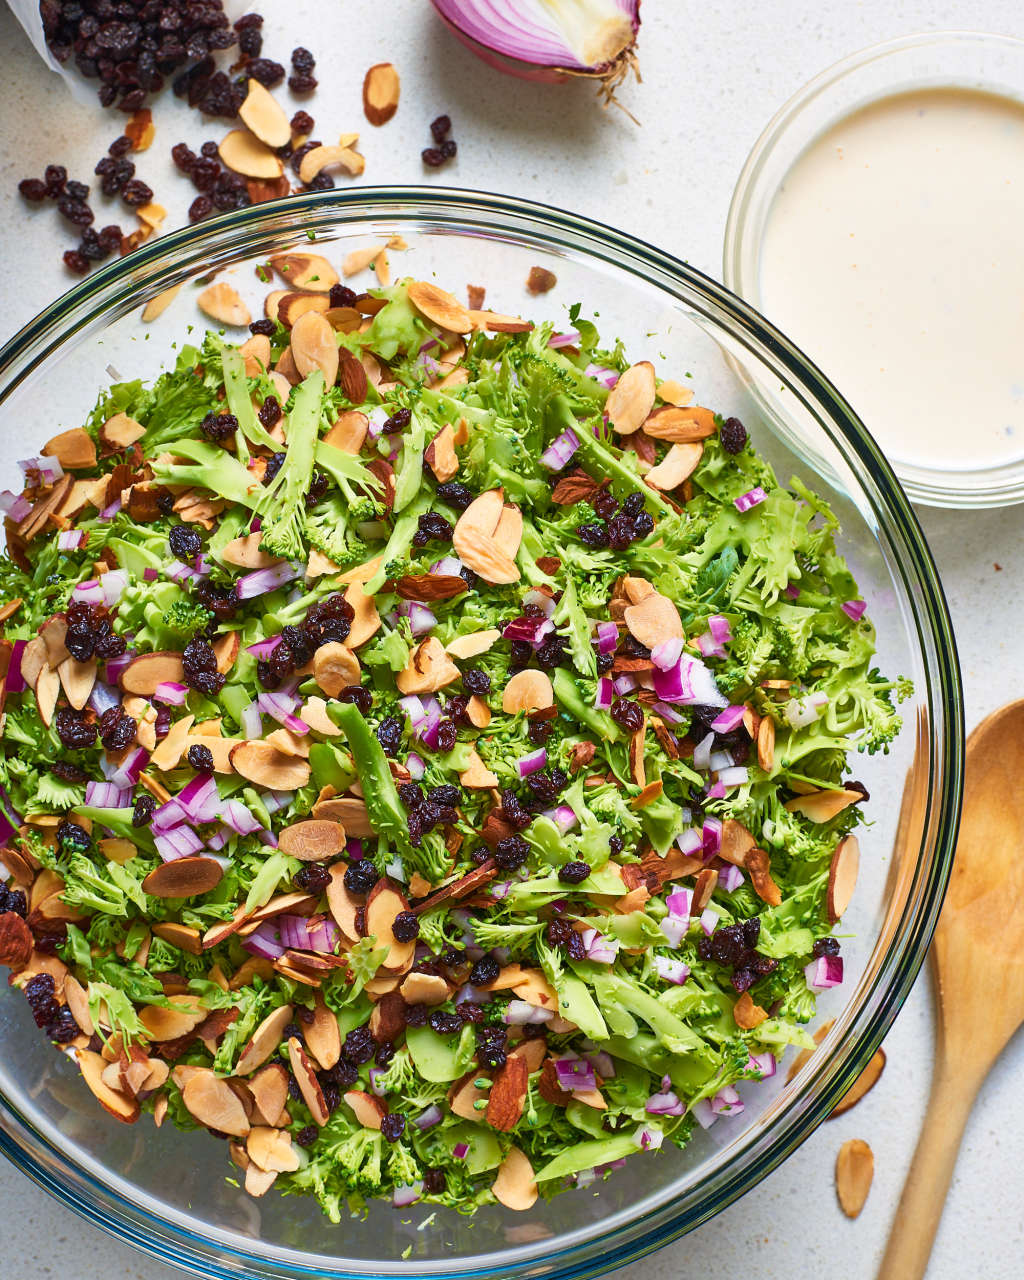 20 Easy, Breezy Sides & Salads Ideas for the Potluck